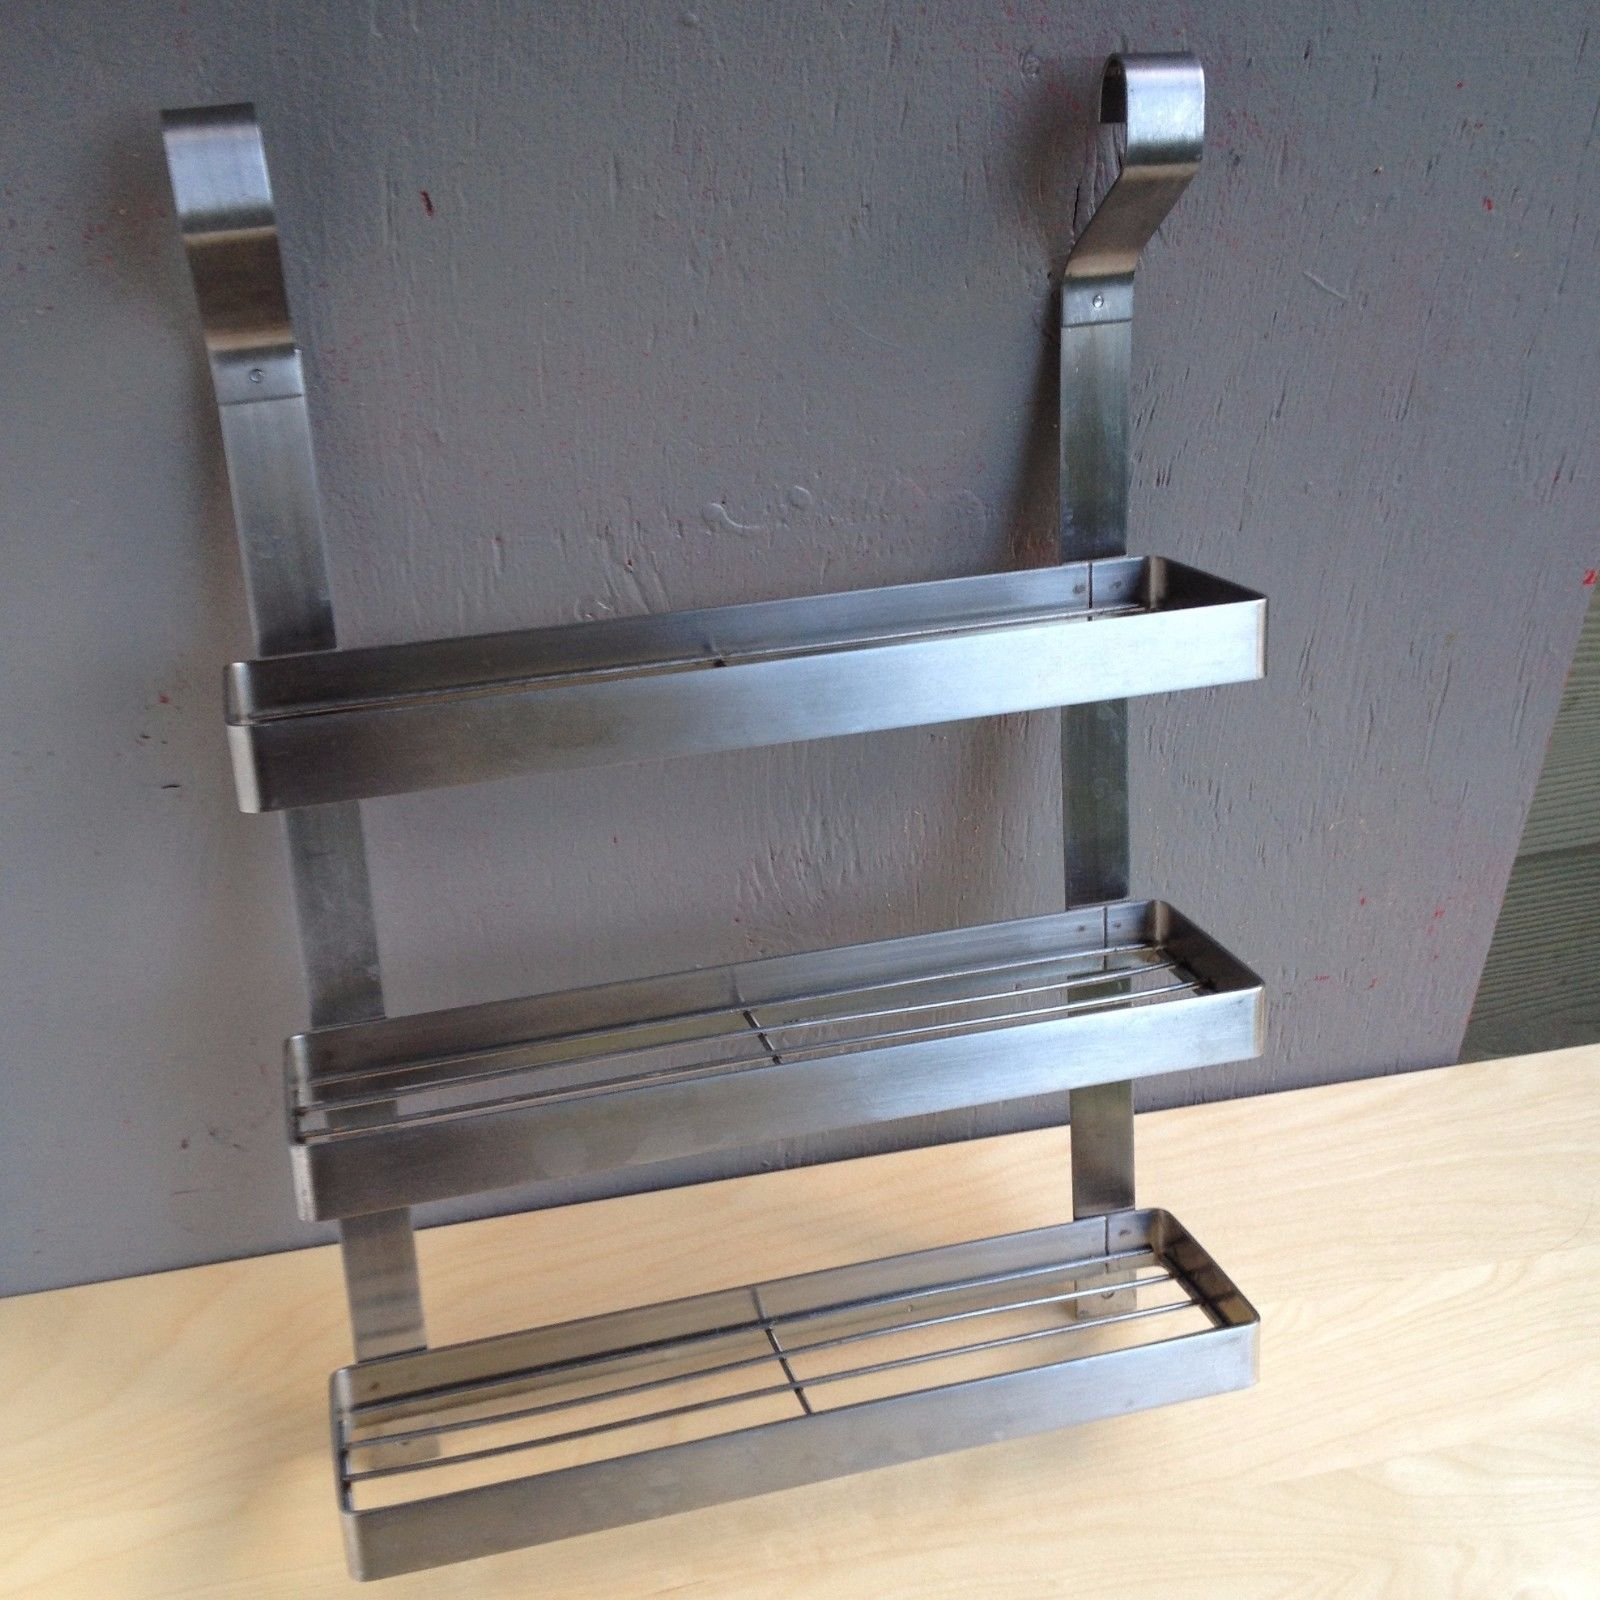 Ikea Grundtal Stainless Steel Spice Rack Hanging System